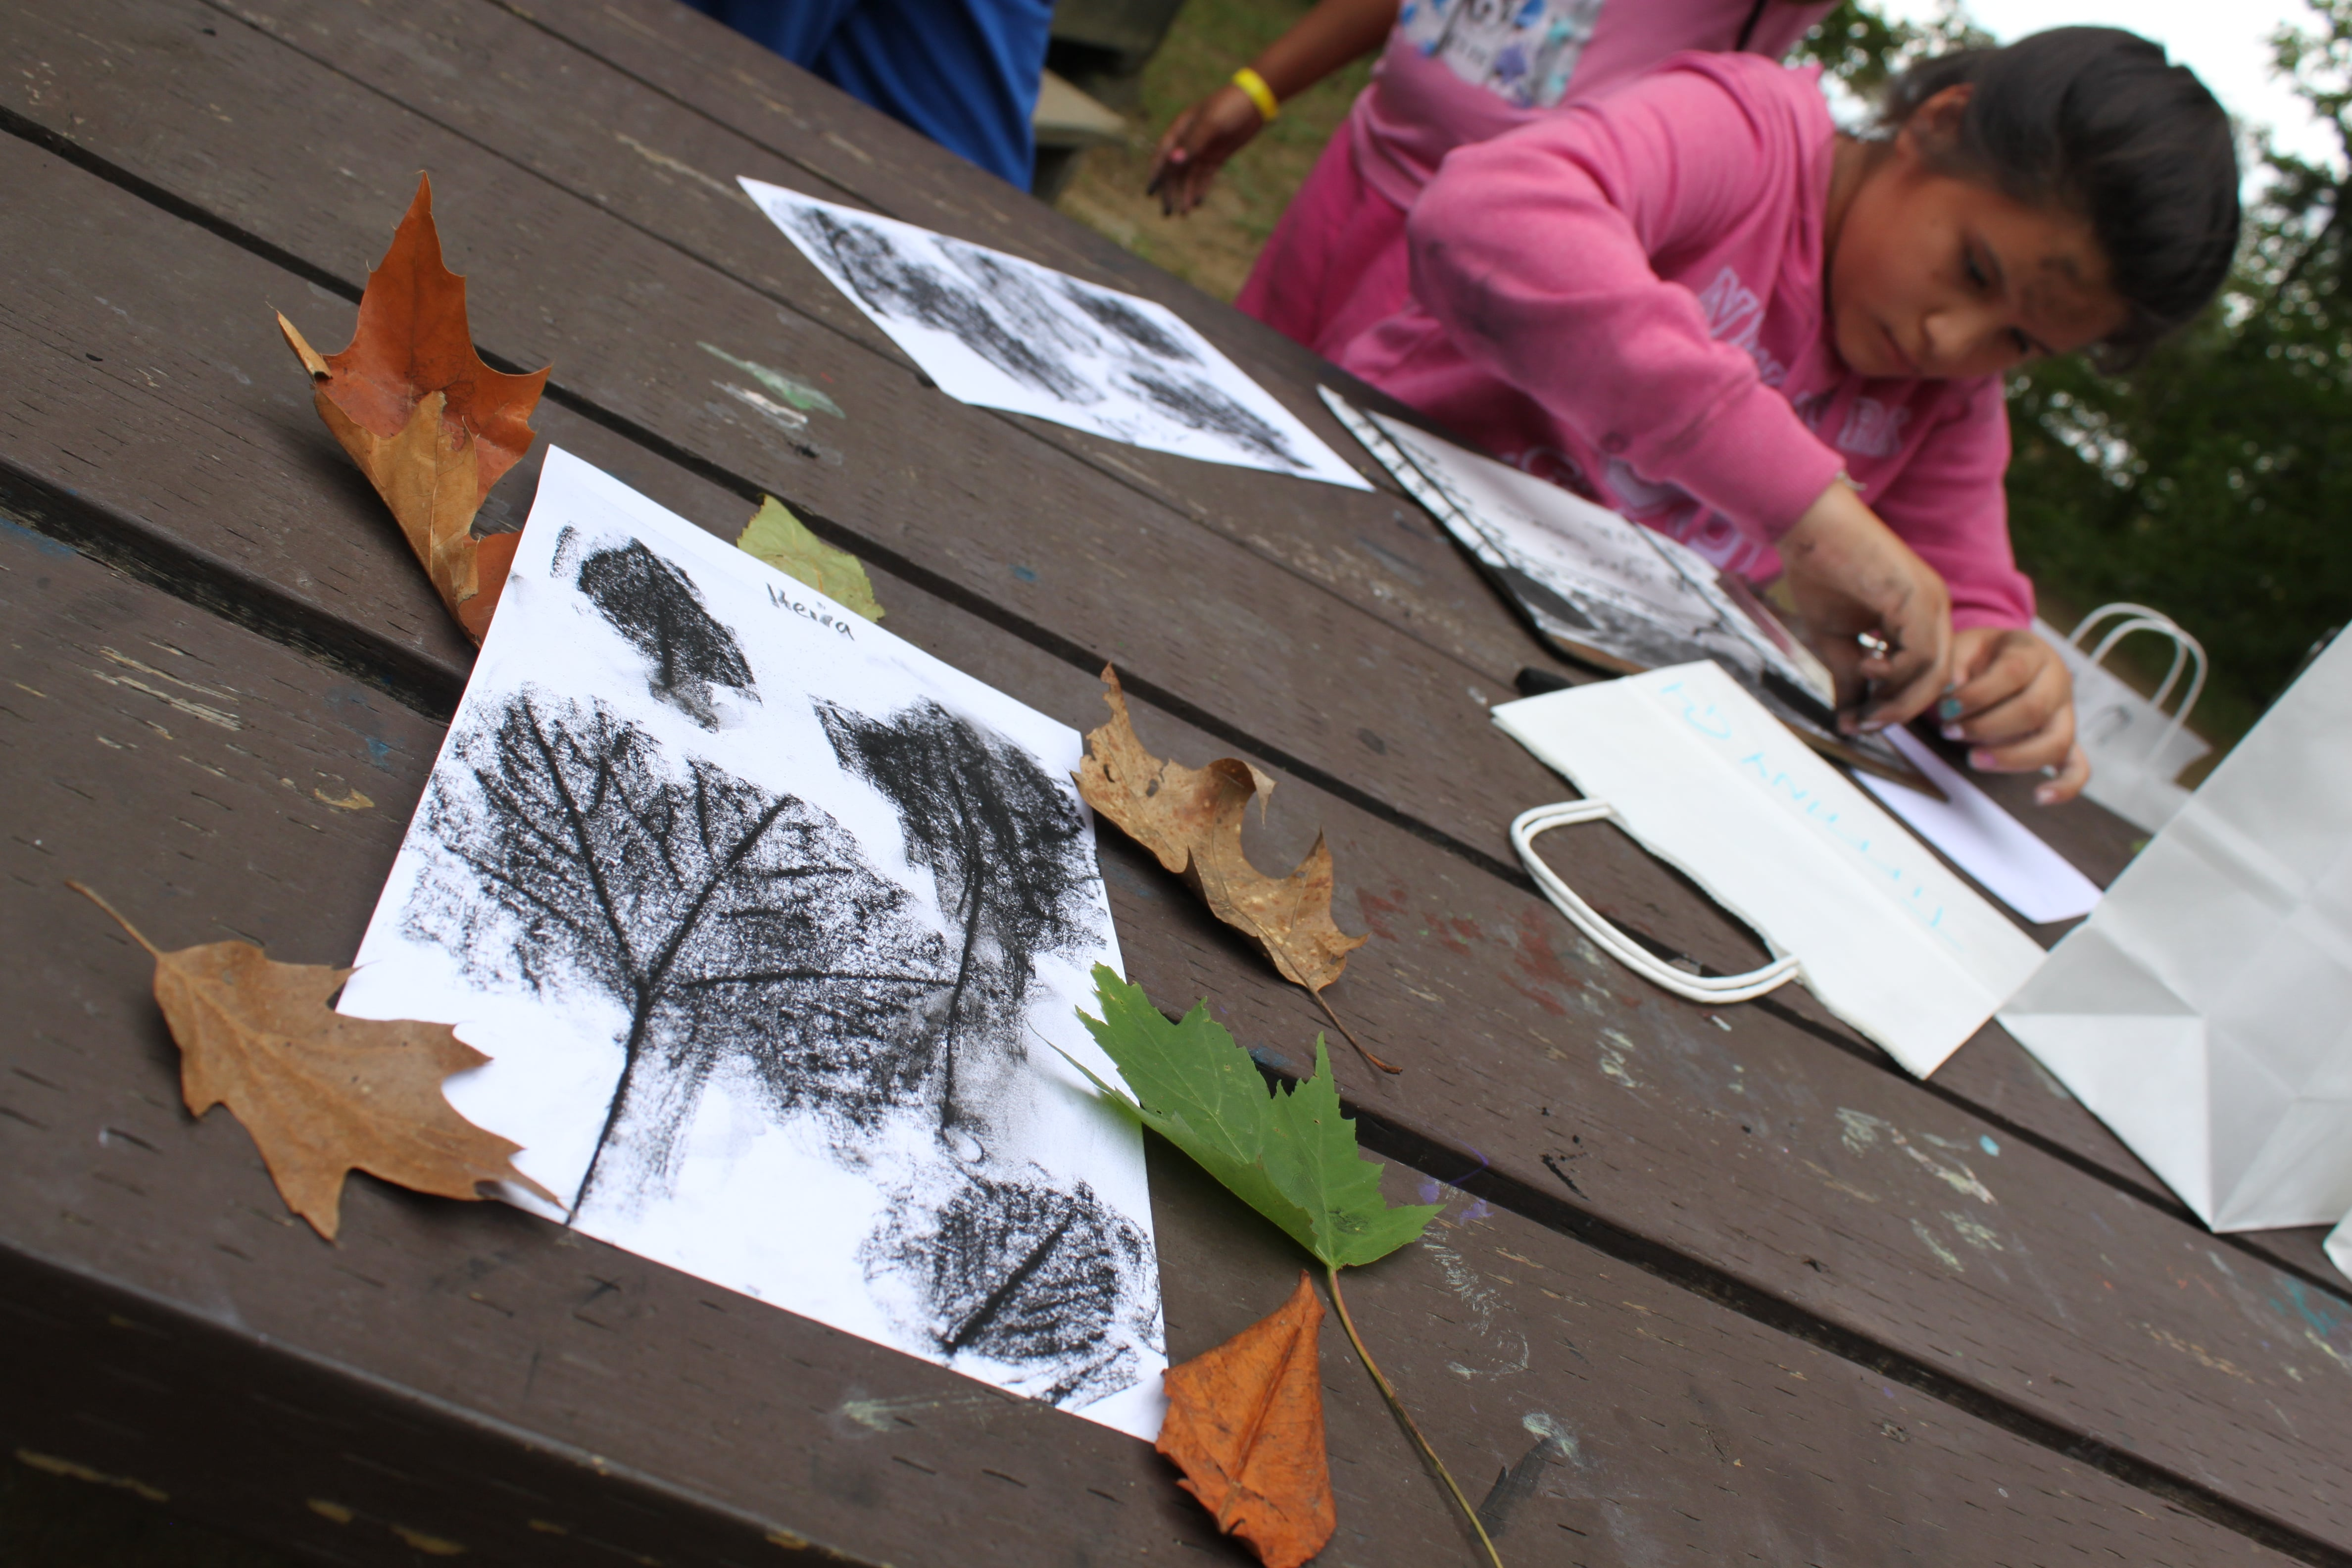 Campers sketch their findings from the natural world.